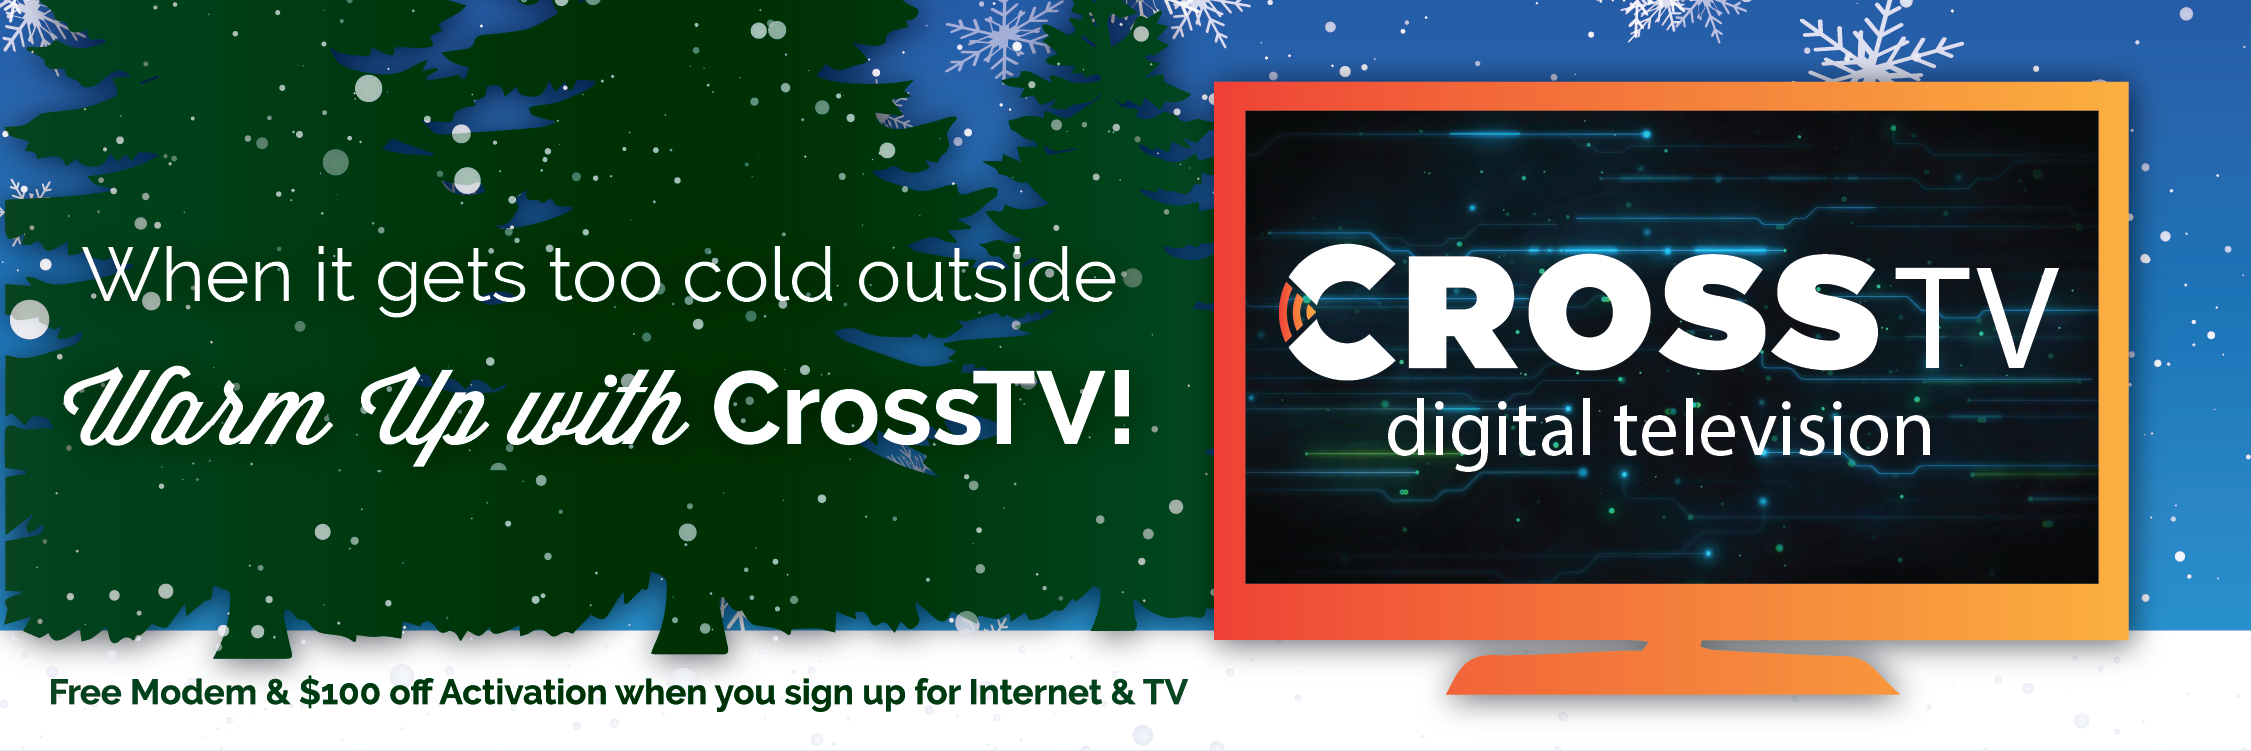 Warm Up with CrossTV